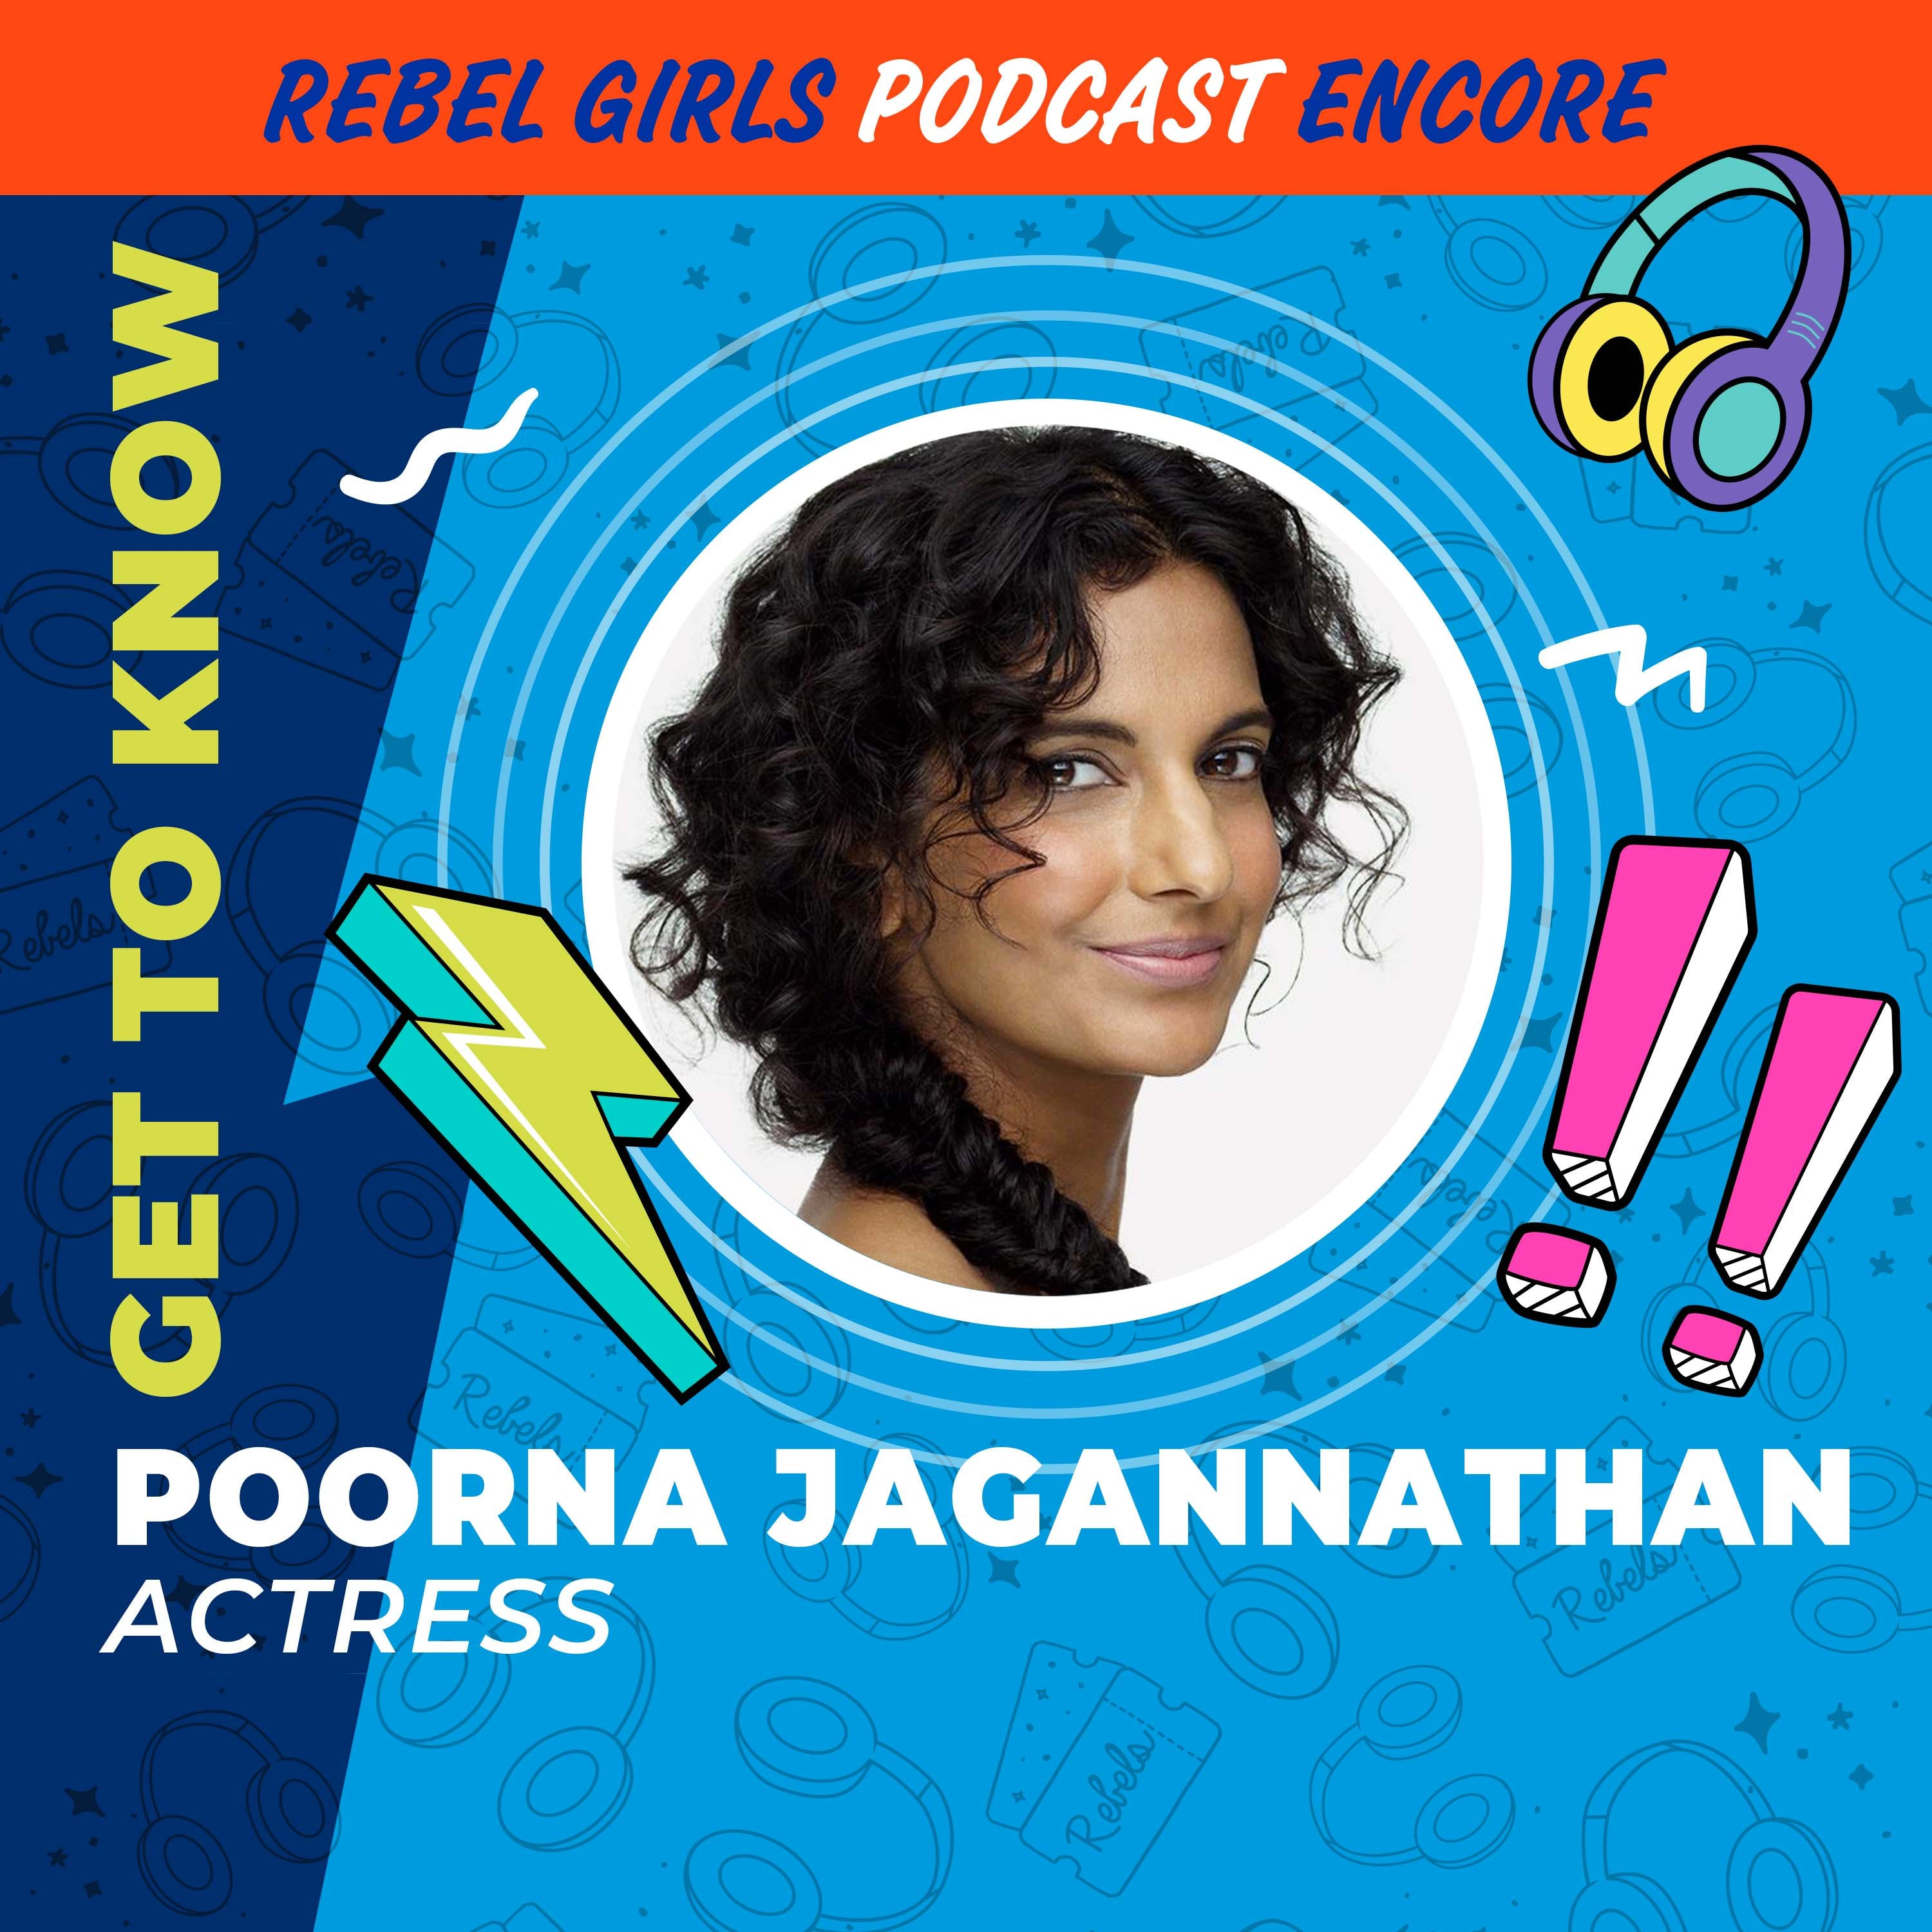 Get to Know Poorna Jagannathan